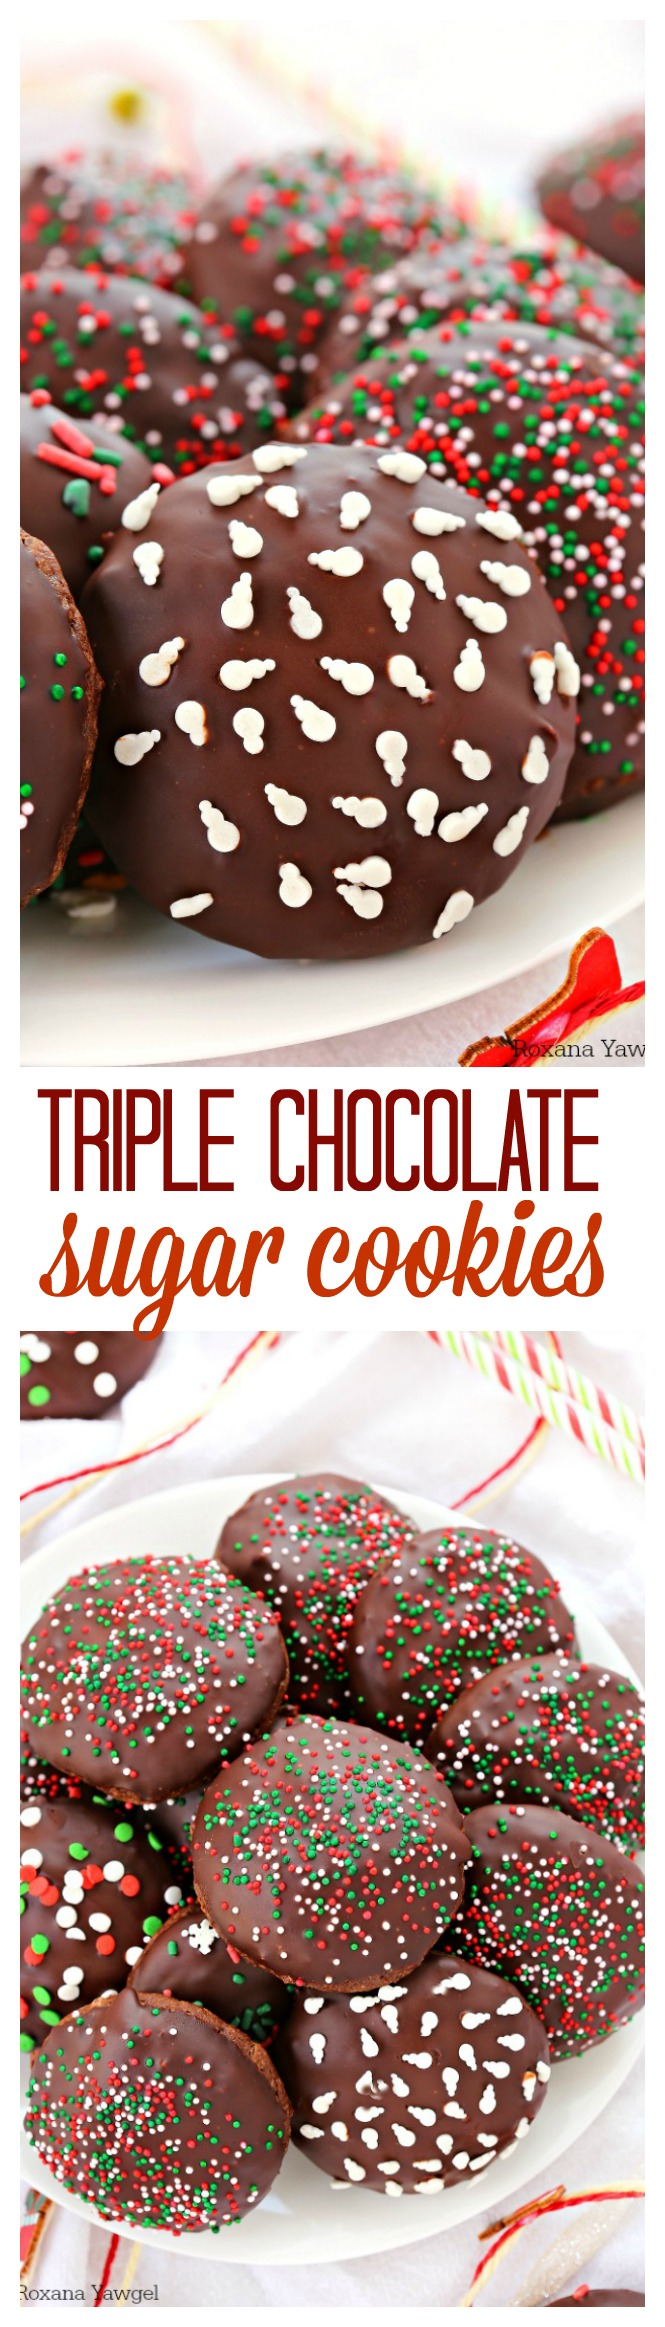 Triple chocolate sugar cookies recipe